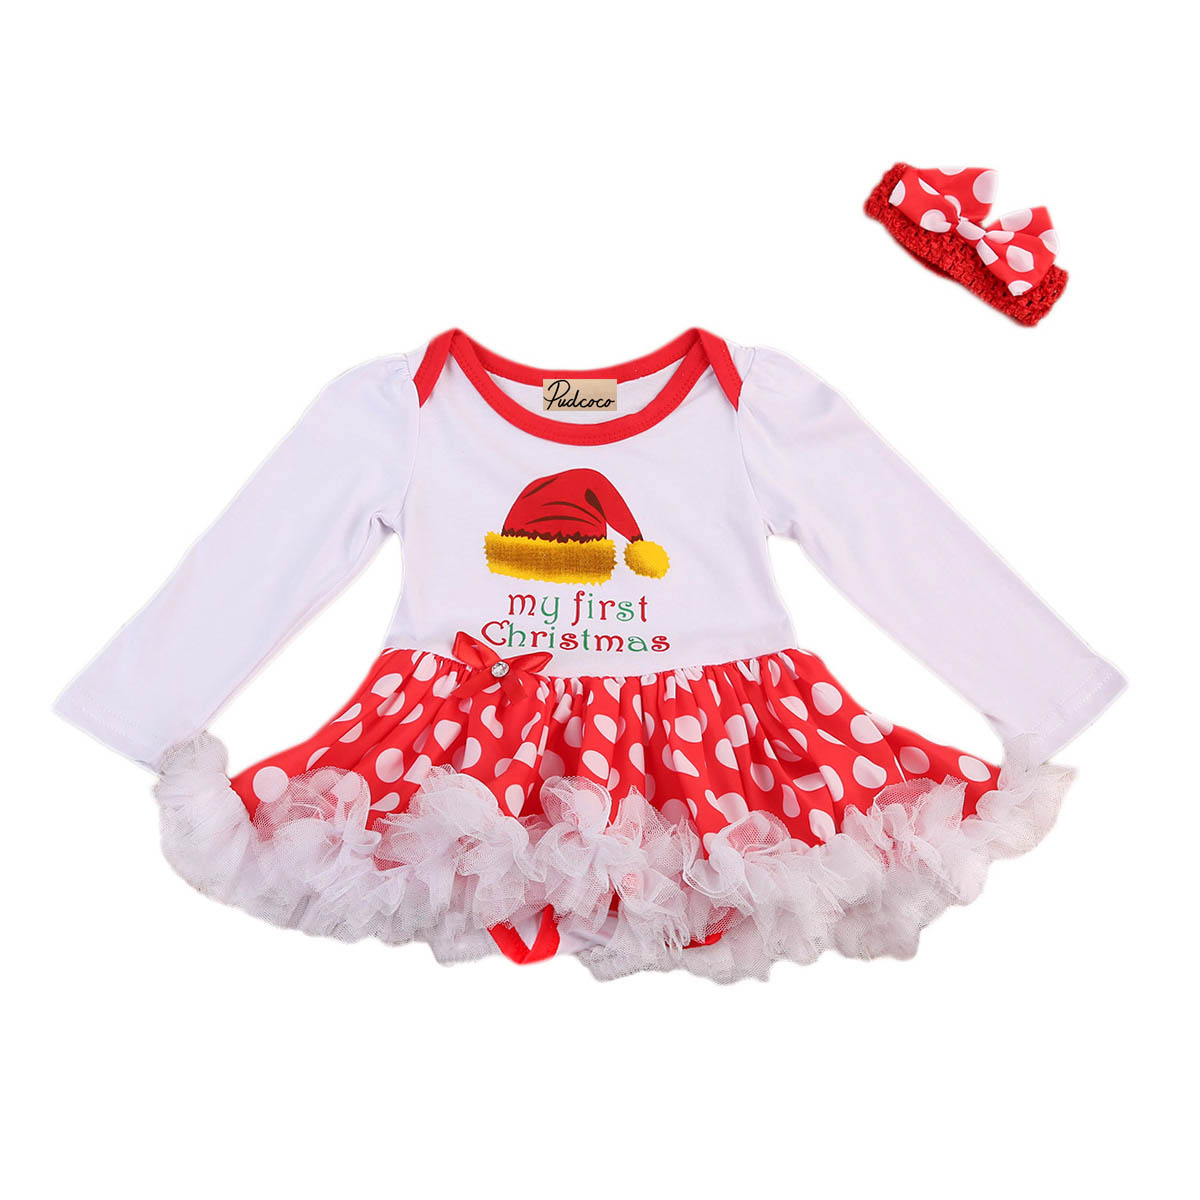 Baby Girls Bodysuit Tutu Long Sleeve O-Neck Print Red Lace Dress Outfits 0-24M Newborn Christmas Costume 2PCS Set himipopo 2 pcs baby girls bodysuit dress